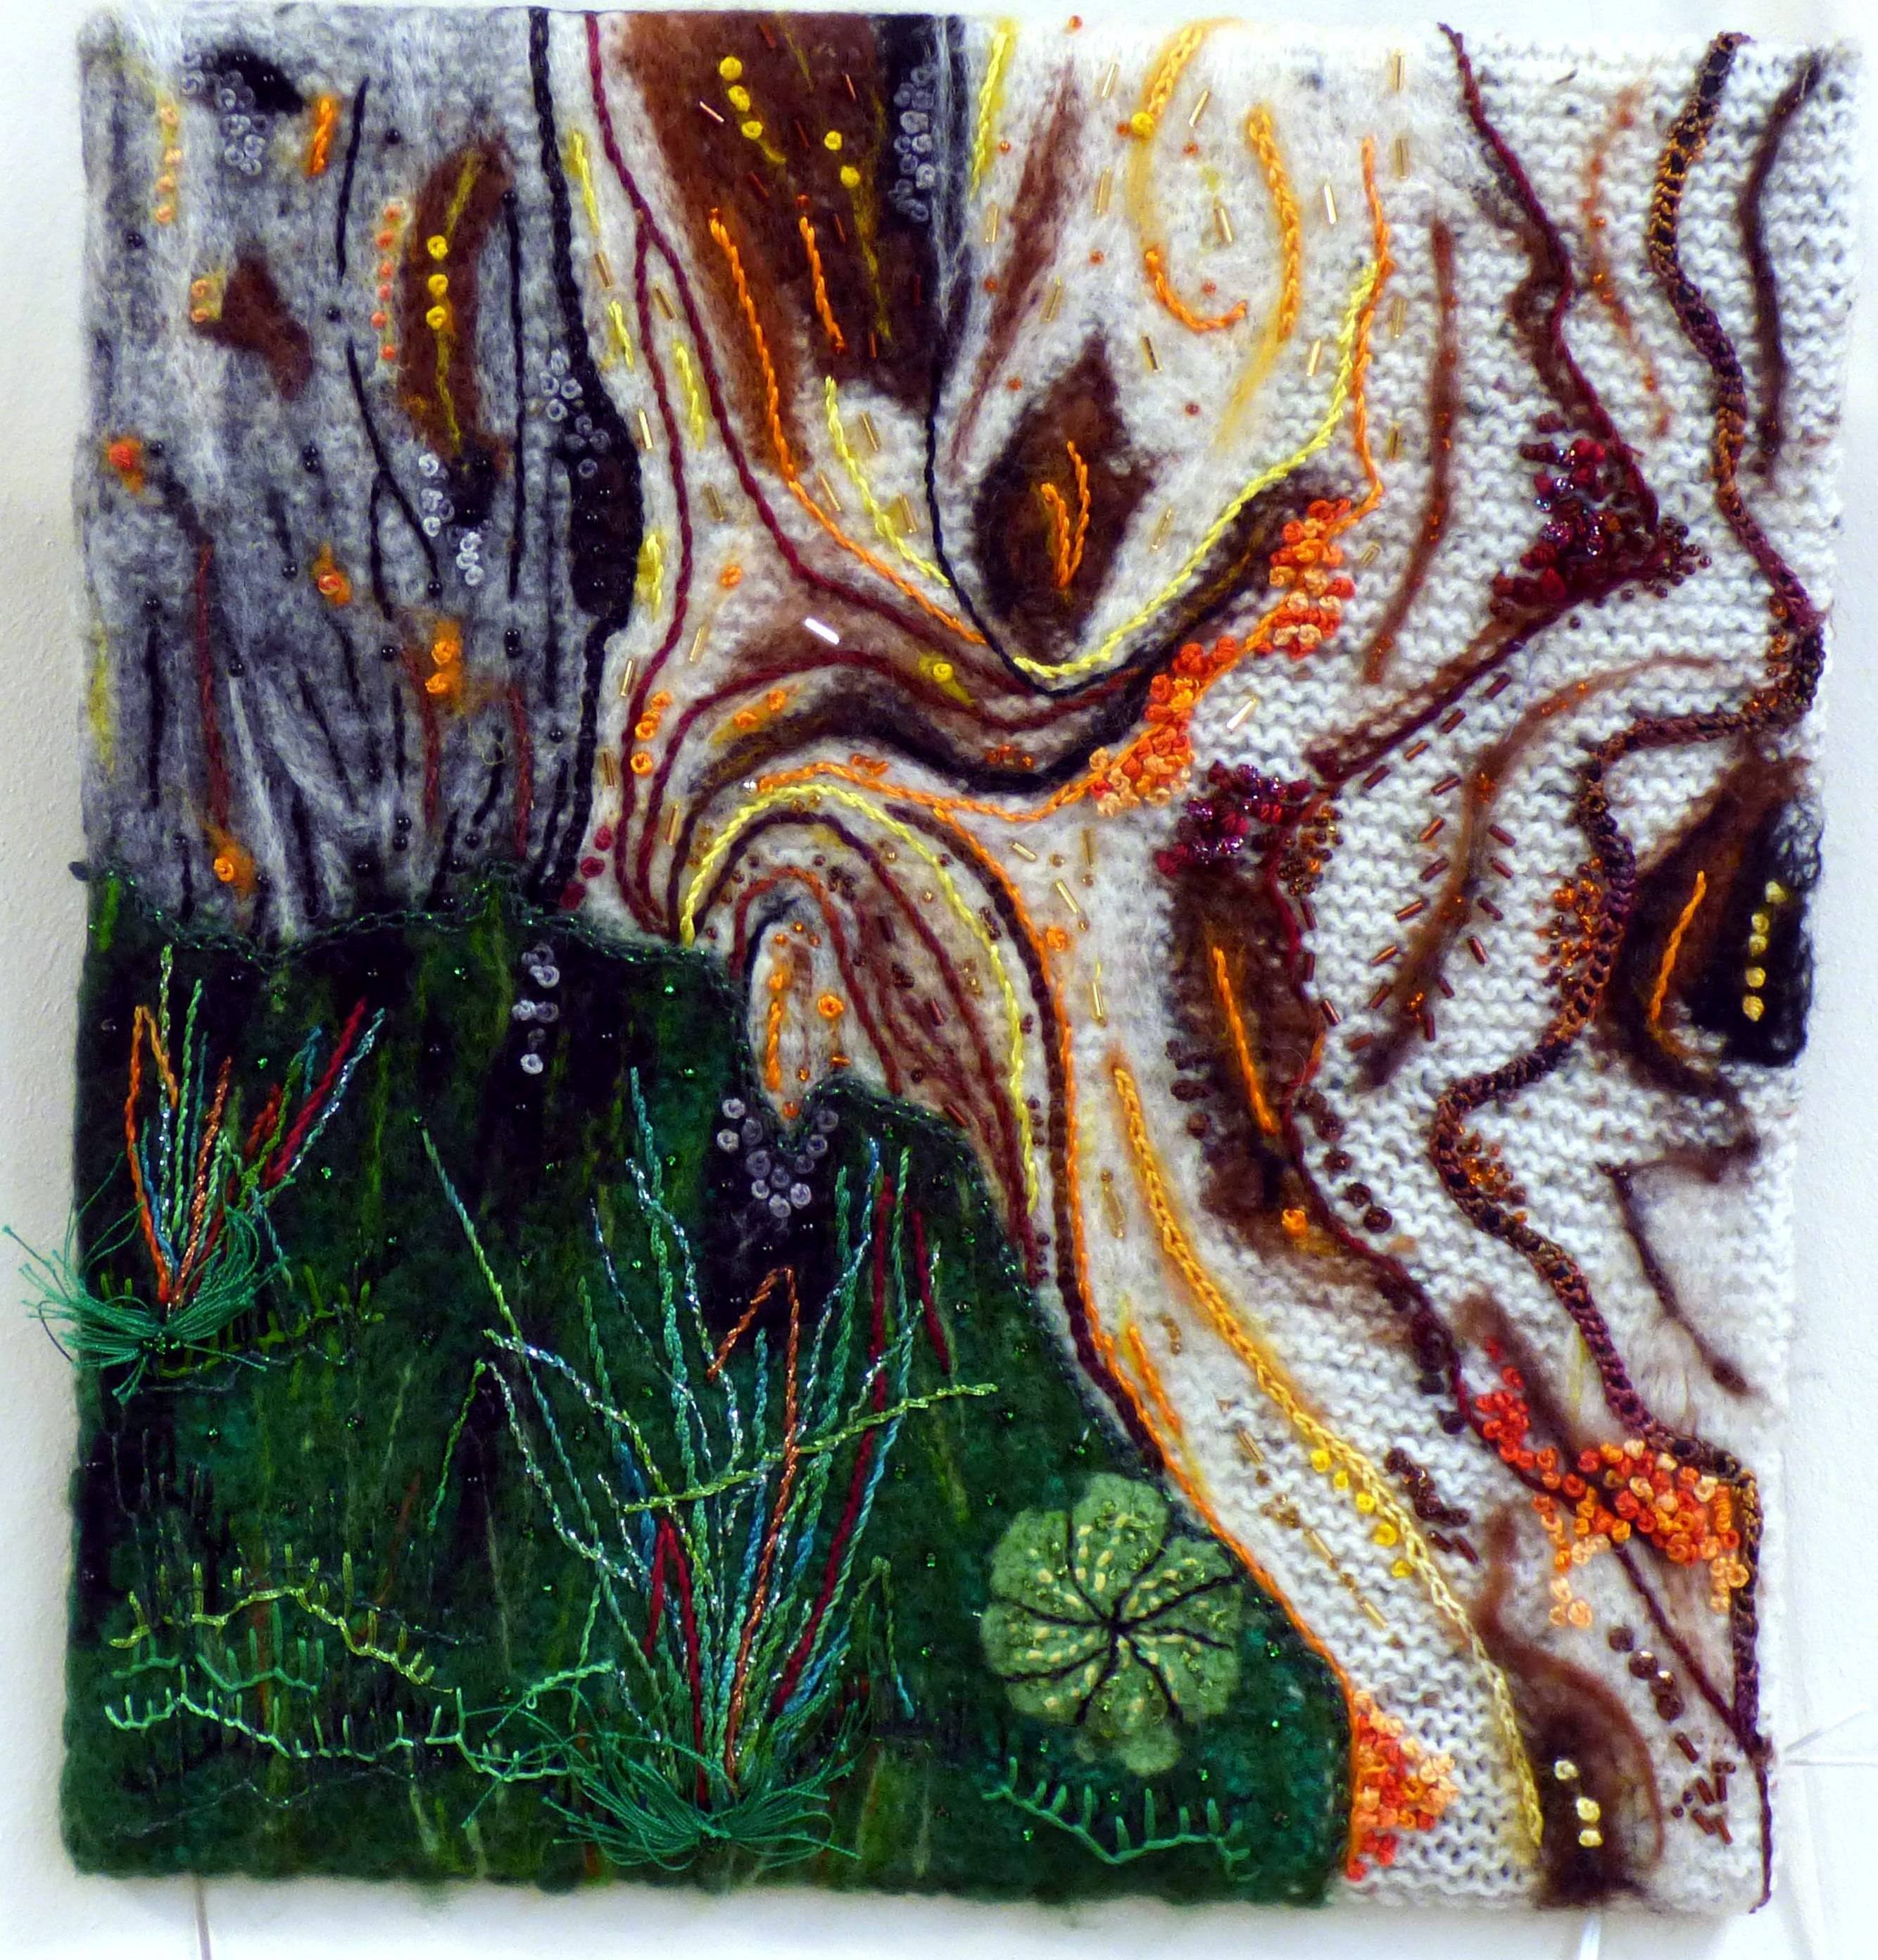 NEW LIFE AMONGST THE ANCIENT ROLLRIGHT STONES by Anne Leyland, Natural Progression Textile Group, Jan 2020